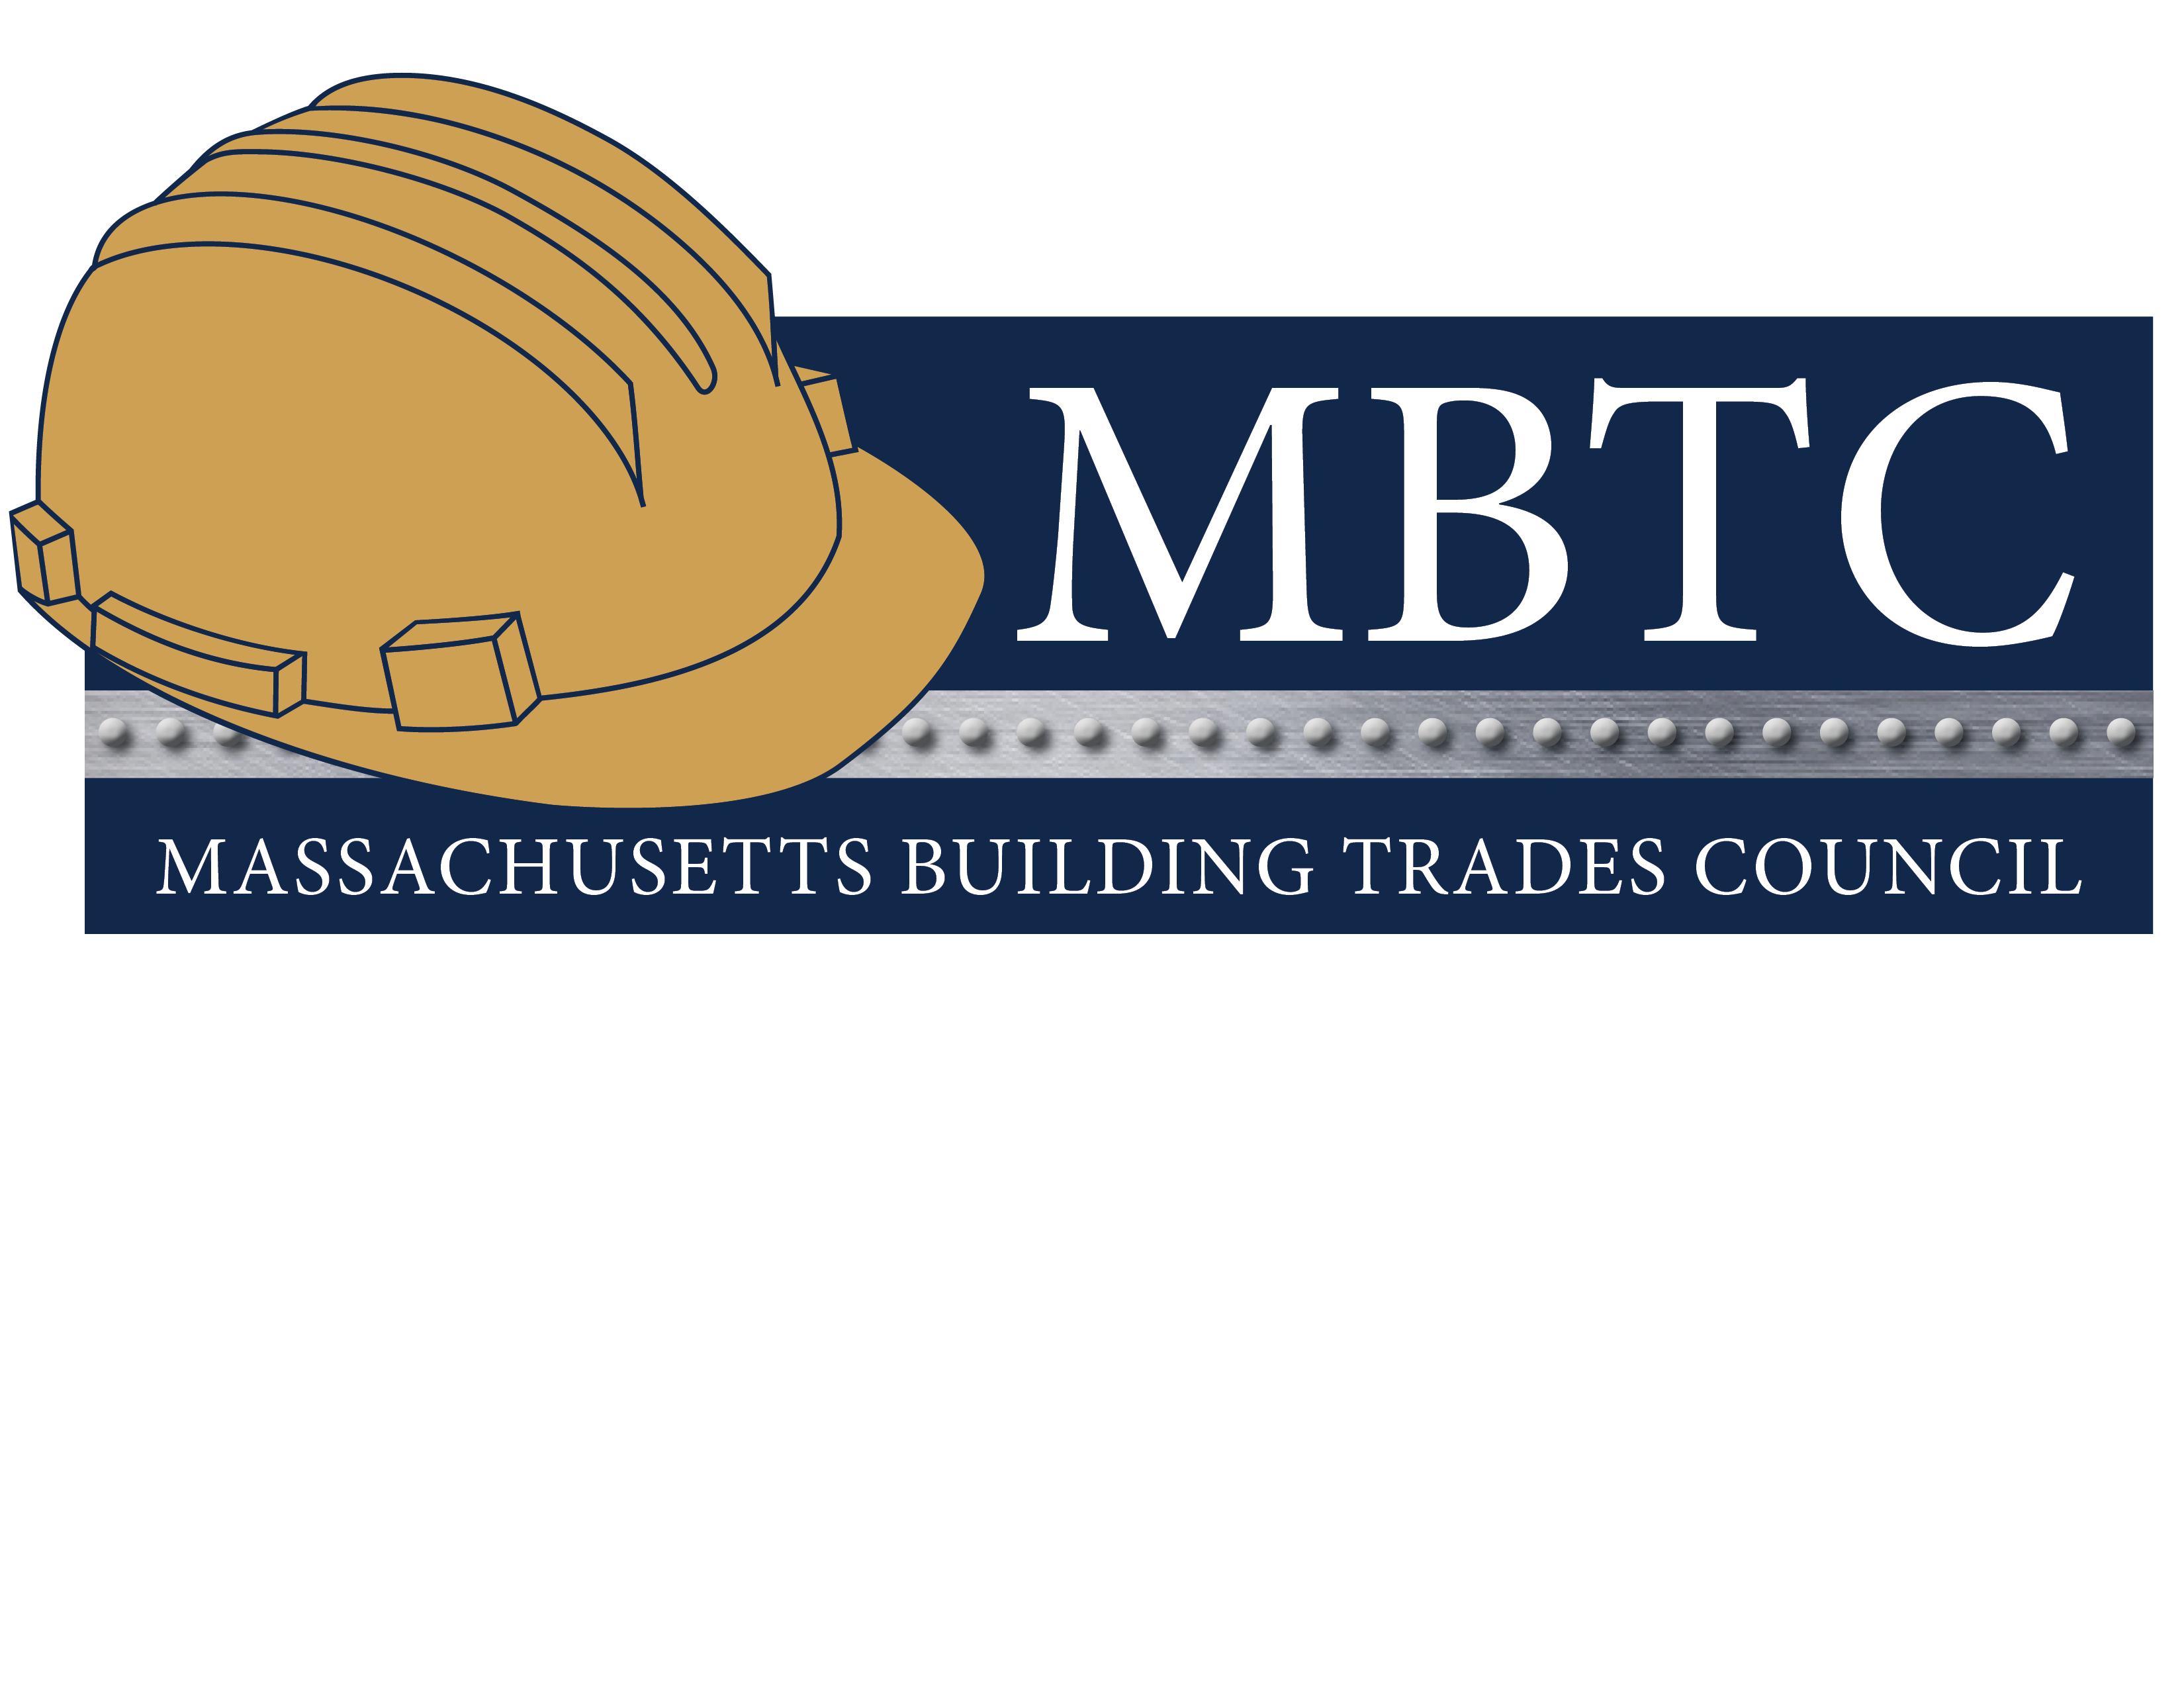 Representing the building trades across Massachusetts.